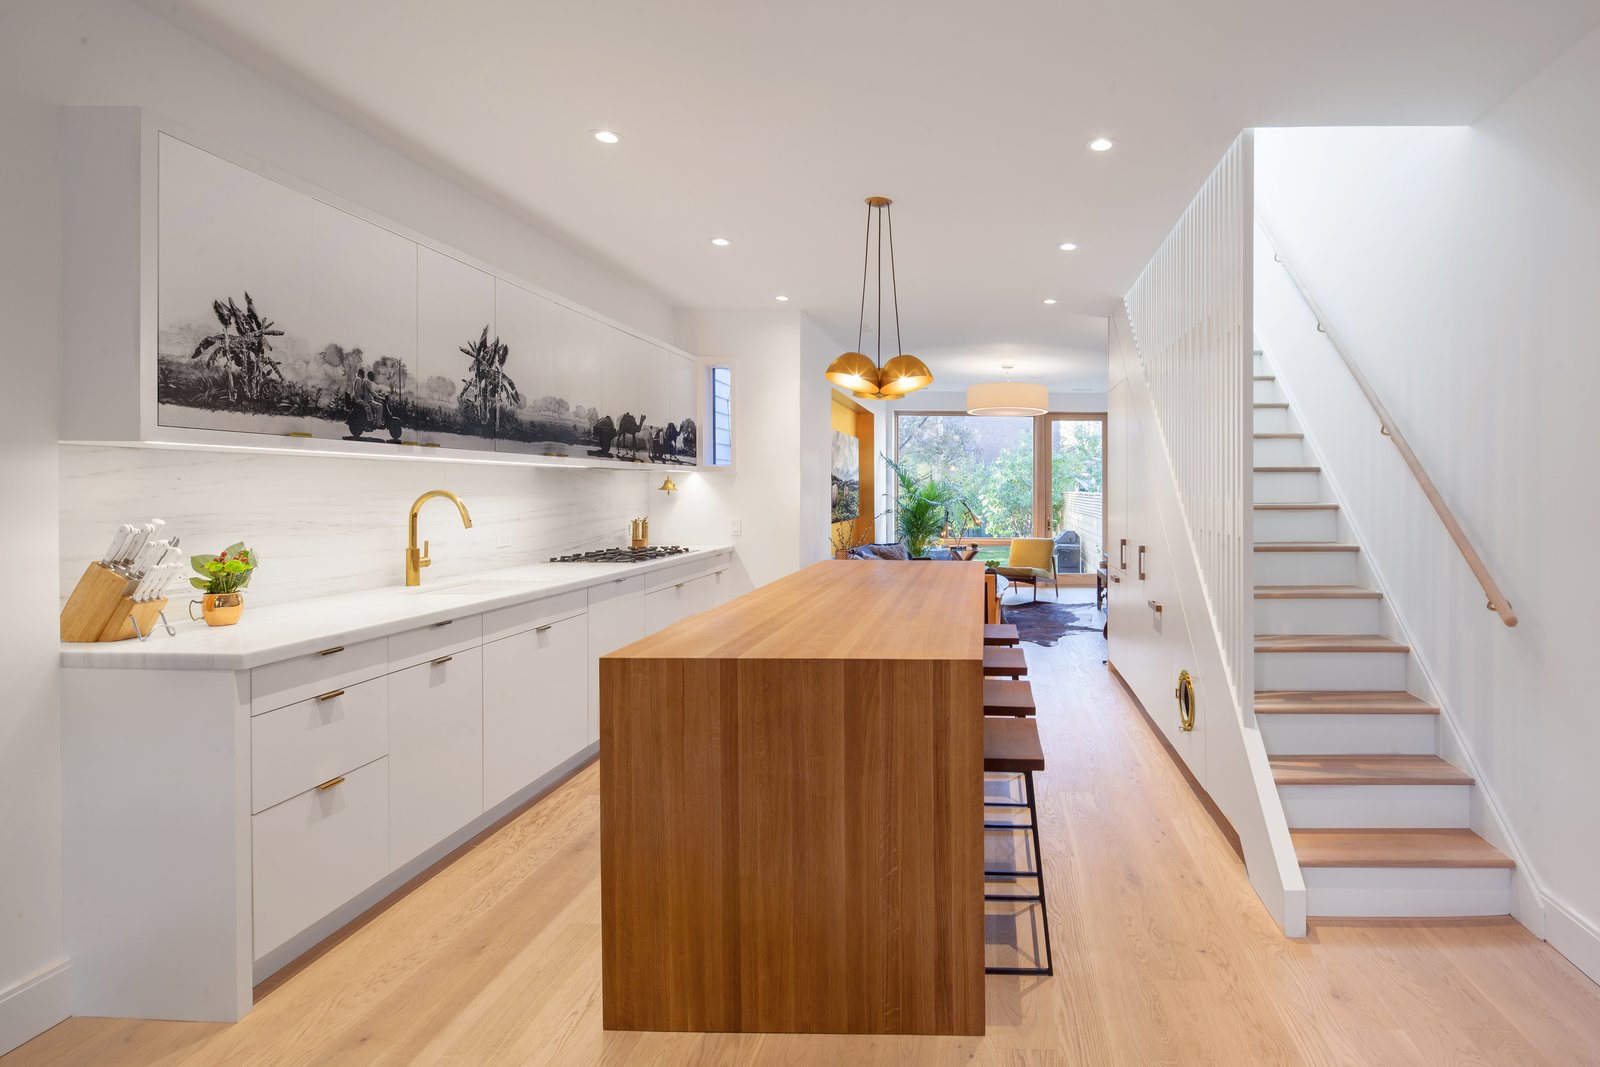 Kitchen, Marble, White, Light Hardwood, Ceiling, Stone Slab, Undermount, Marble, and Wood Kitchen  Best Kitchen Wood Marble Stone Slab Undermount Photos from Ritchie Rowhouse